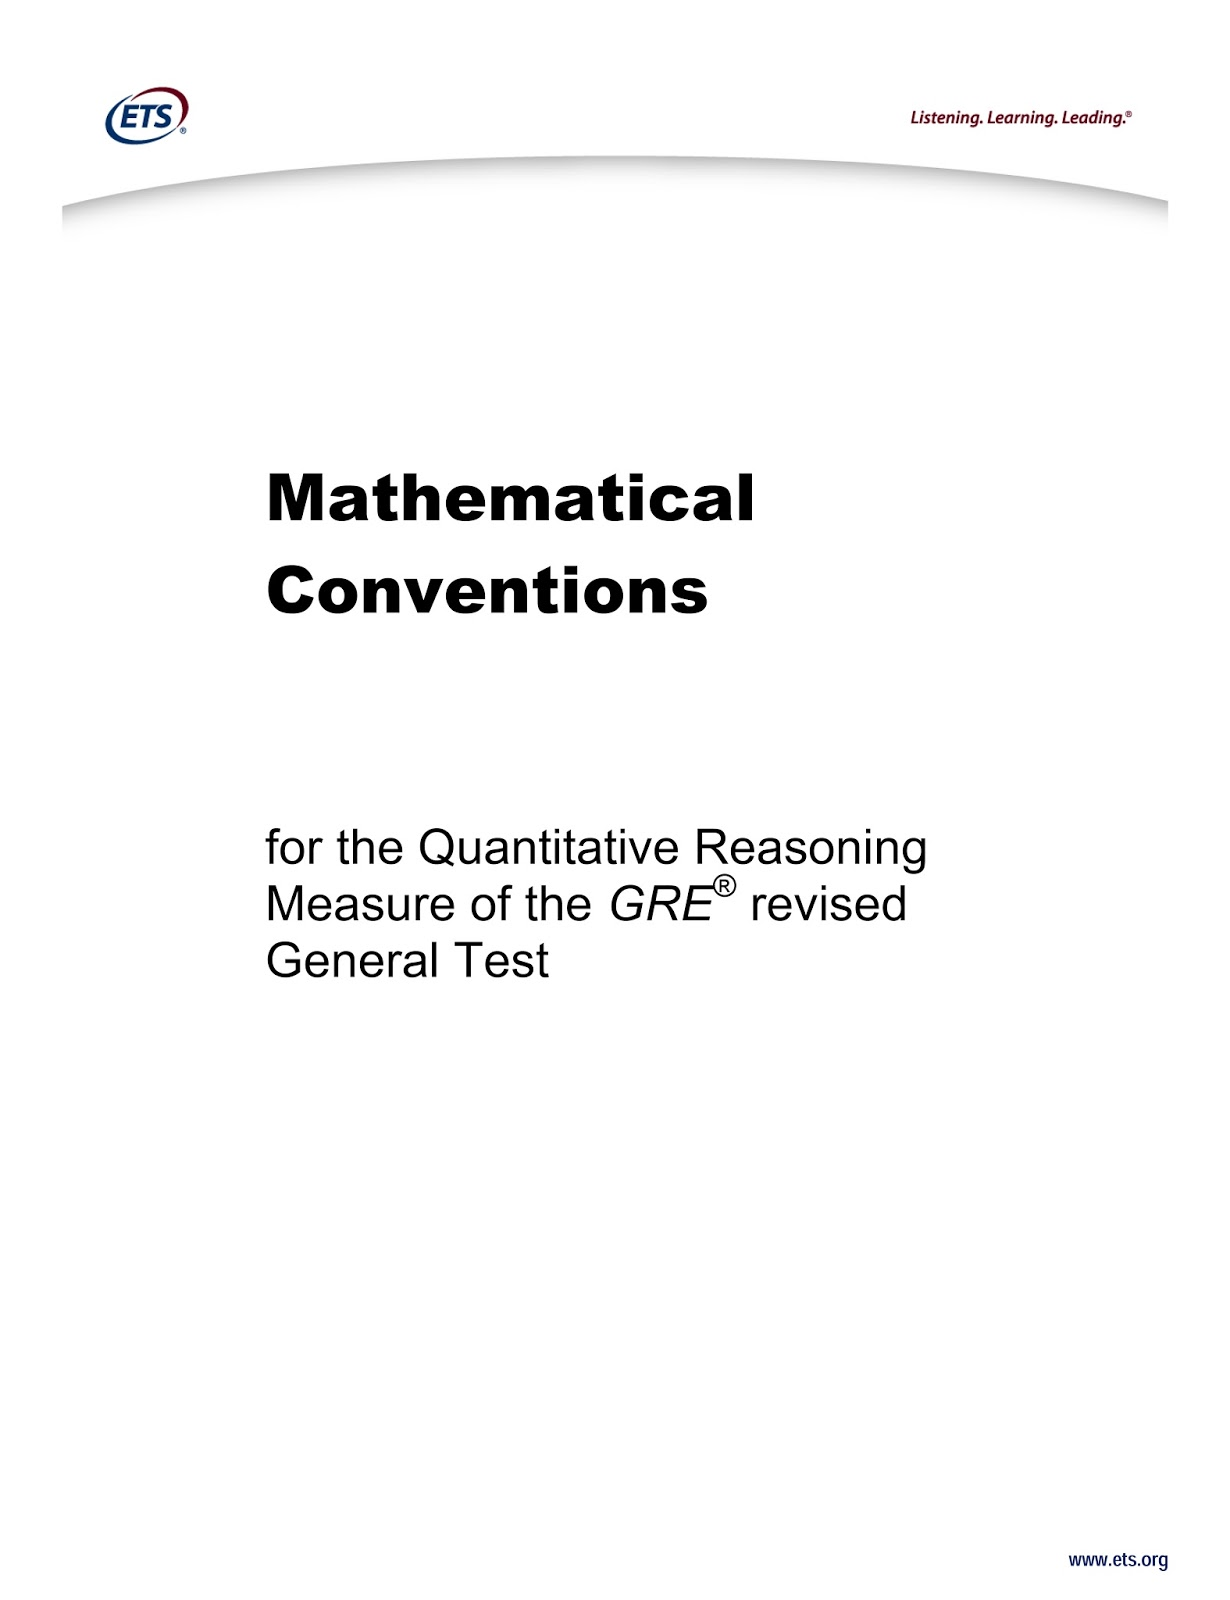 Gre Math Conventions By Educational Testing Service Ets Gre Preparation Forum